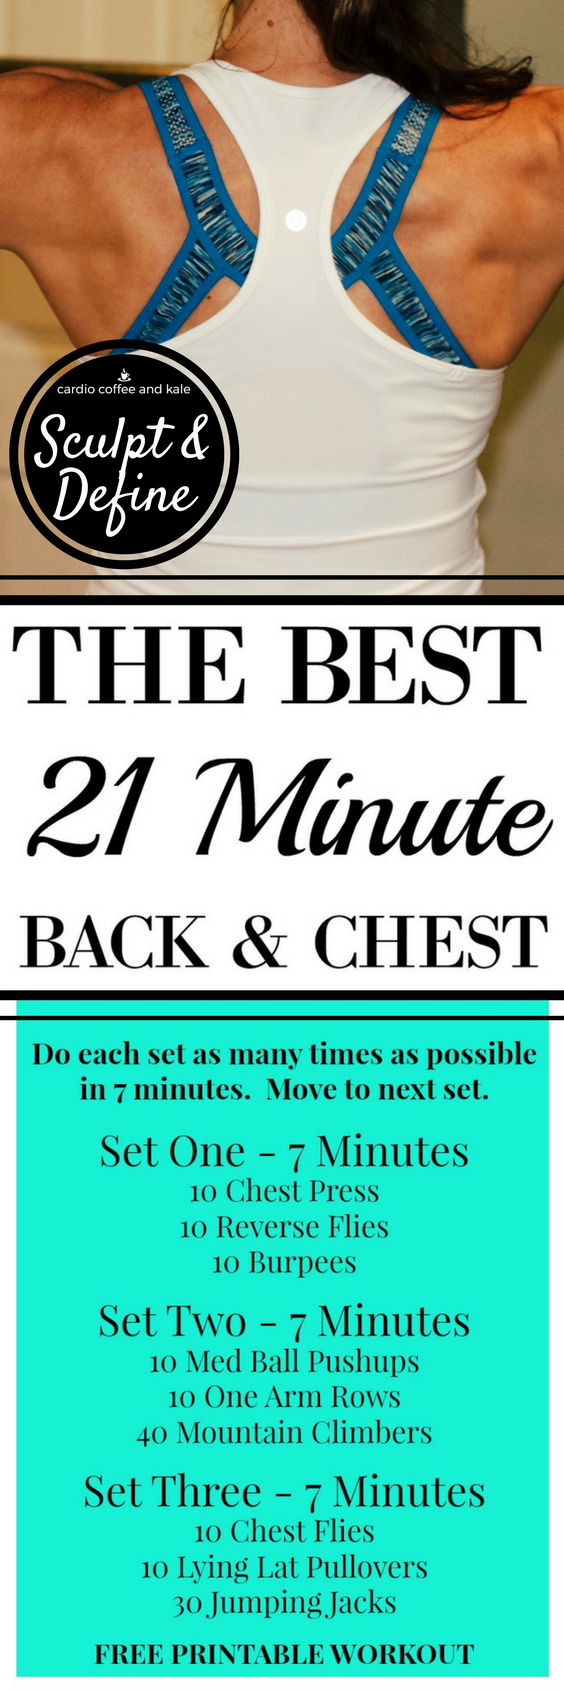 Short on time?  Looking to get some definition in your back?  This workout is 21 minutes and is a perfect strength and fat burning workout! www.cardiocoffeeandkale.com